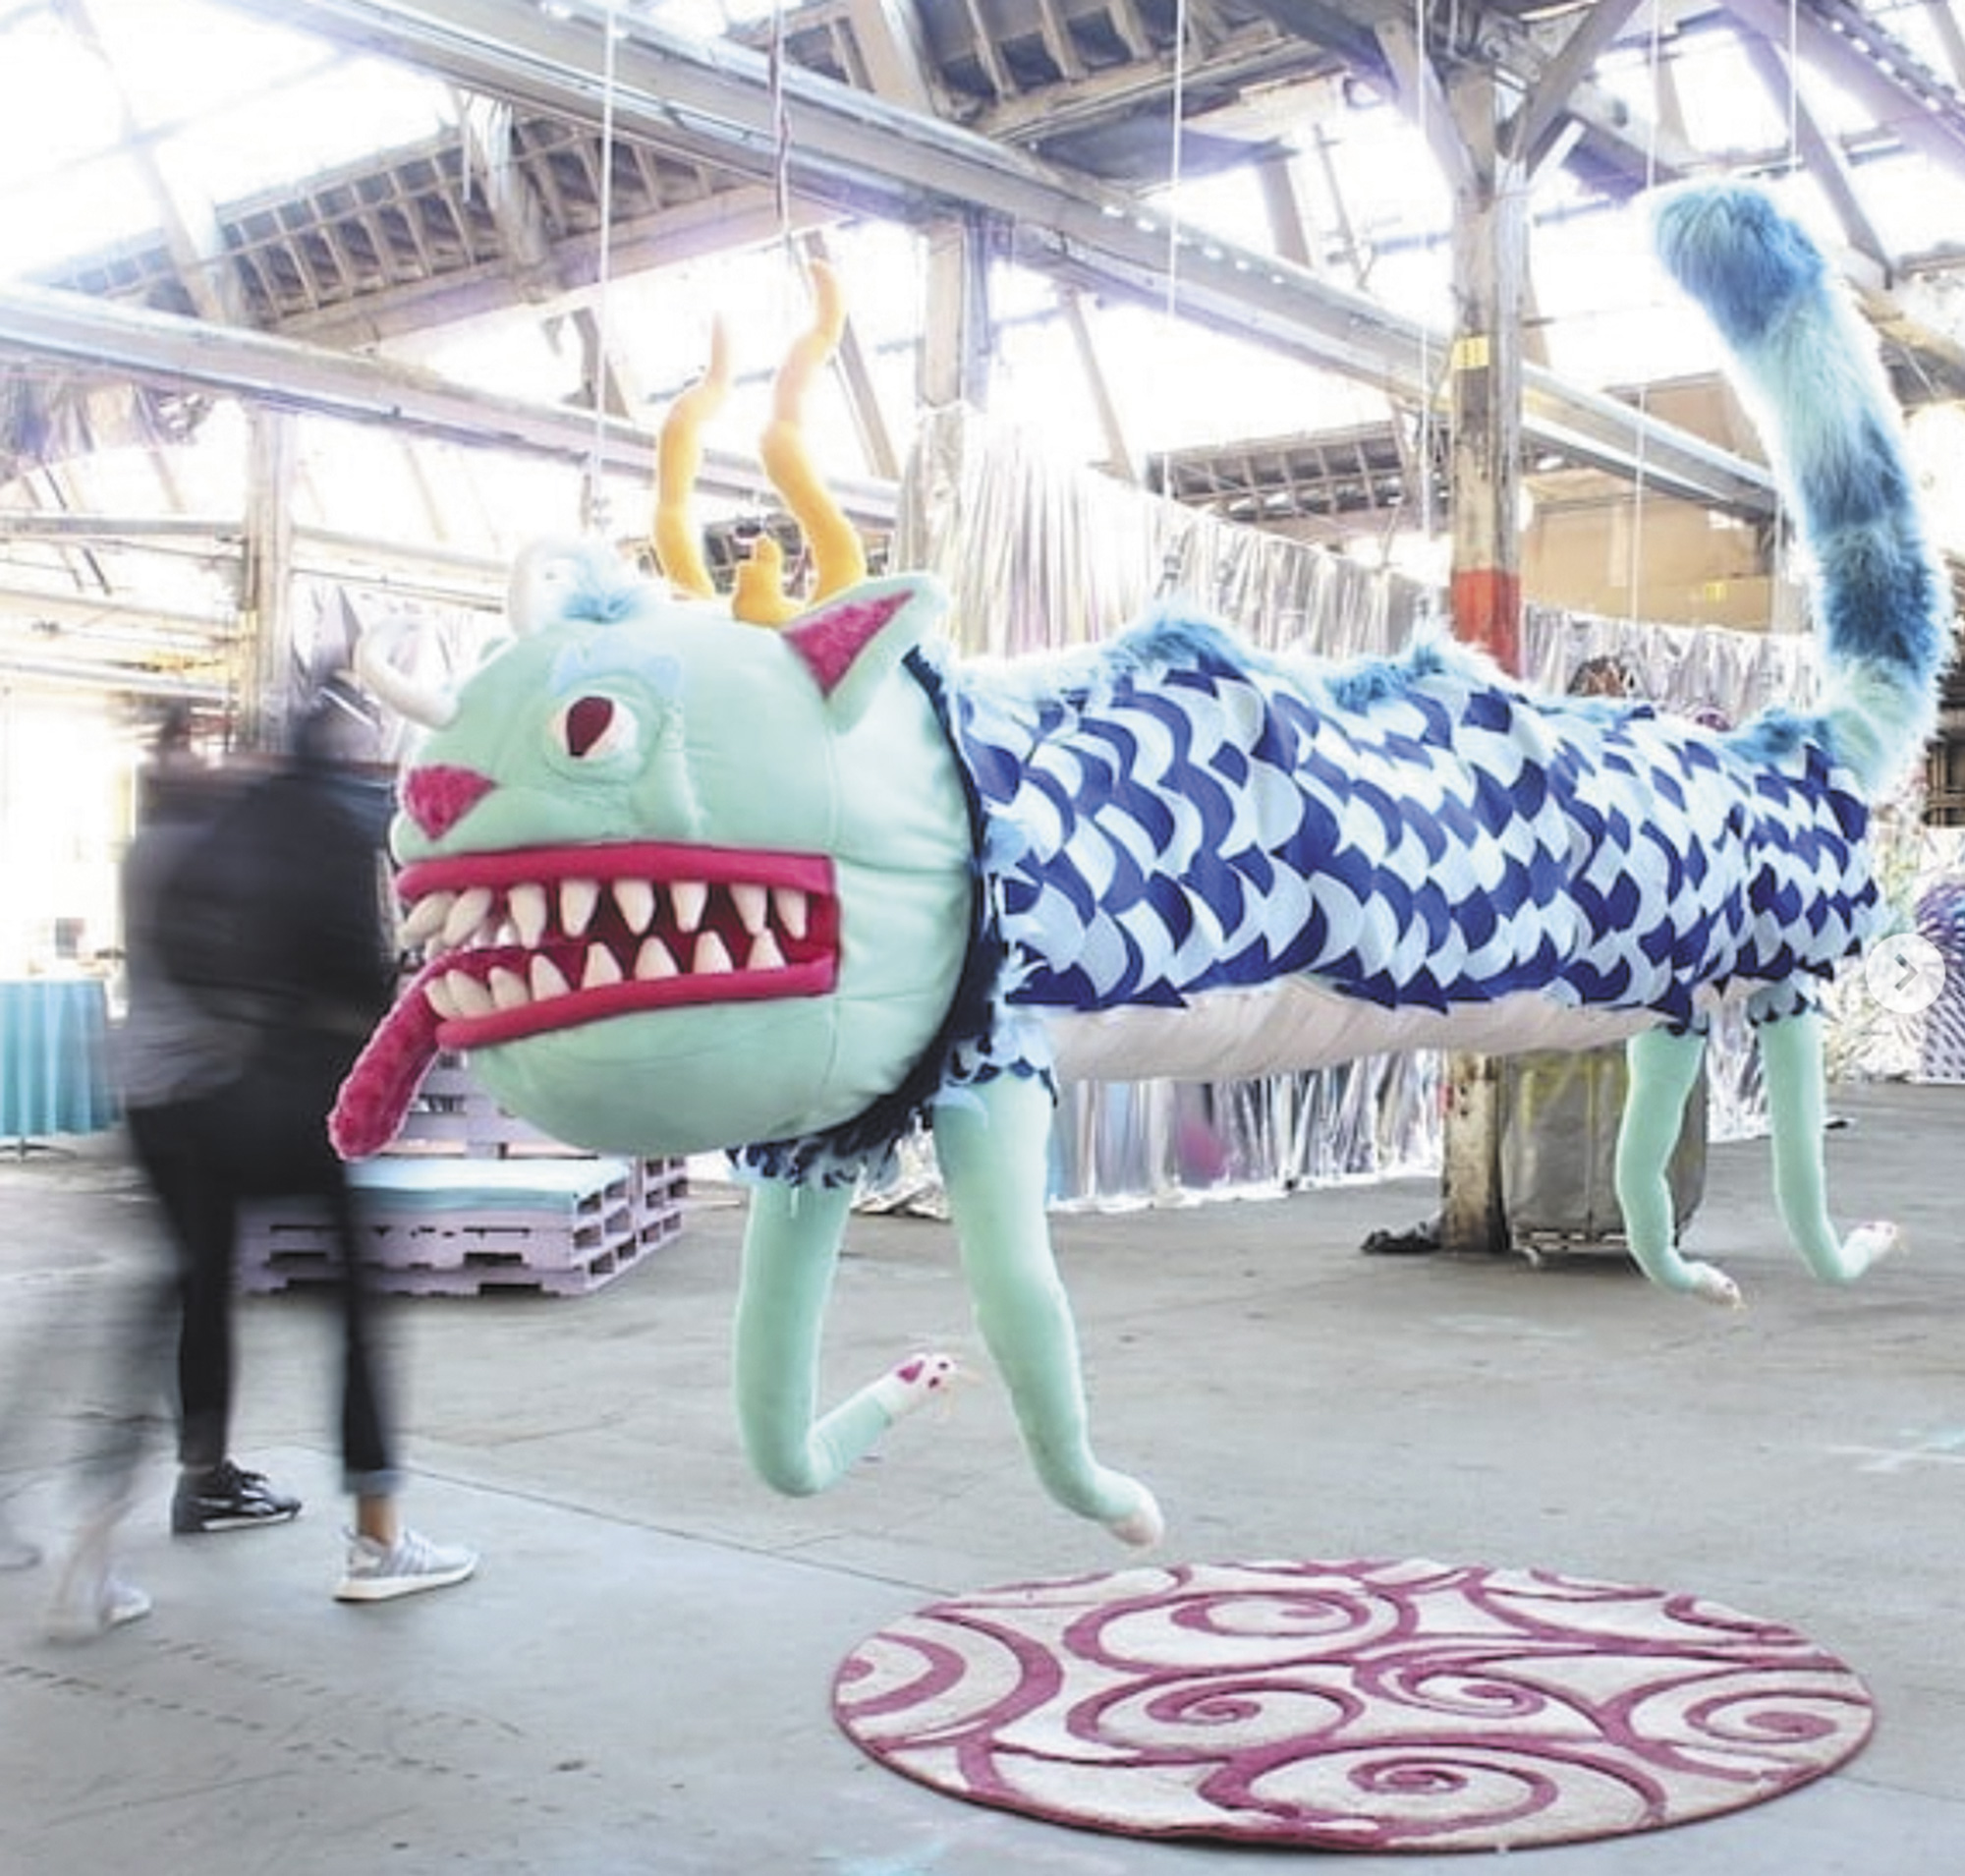 Kyle-Singer-and-Marjorie-Lair-created-this-cat-dragon-for-Far-Out-Factory.-Photo-courtesy-of-the-artist-@waffleconeclub